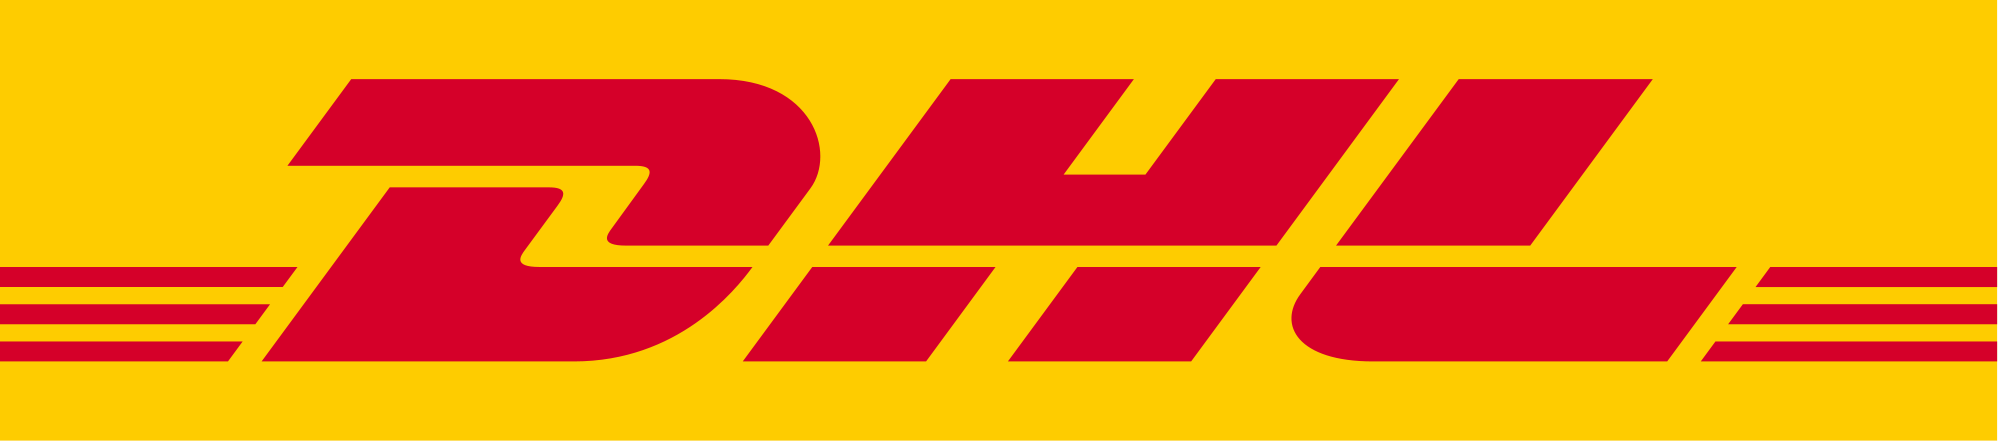 DHL | Energizer Holdings - Rock Hill, SC